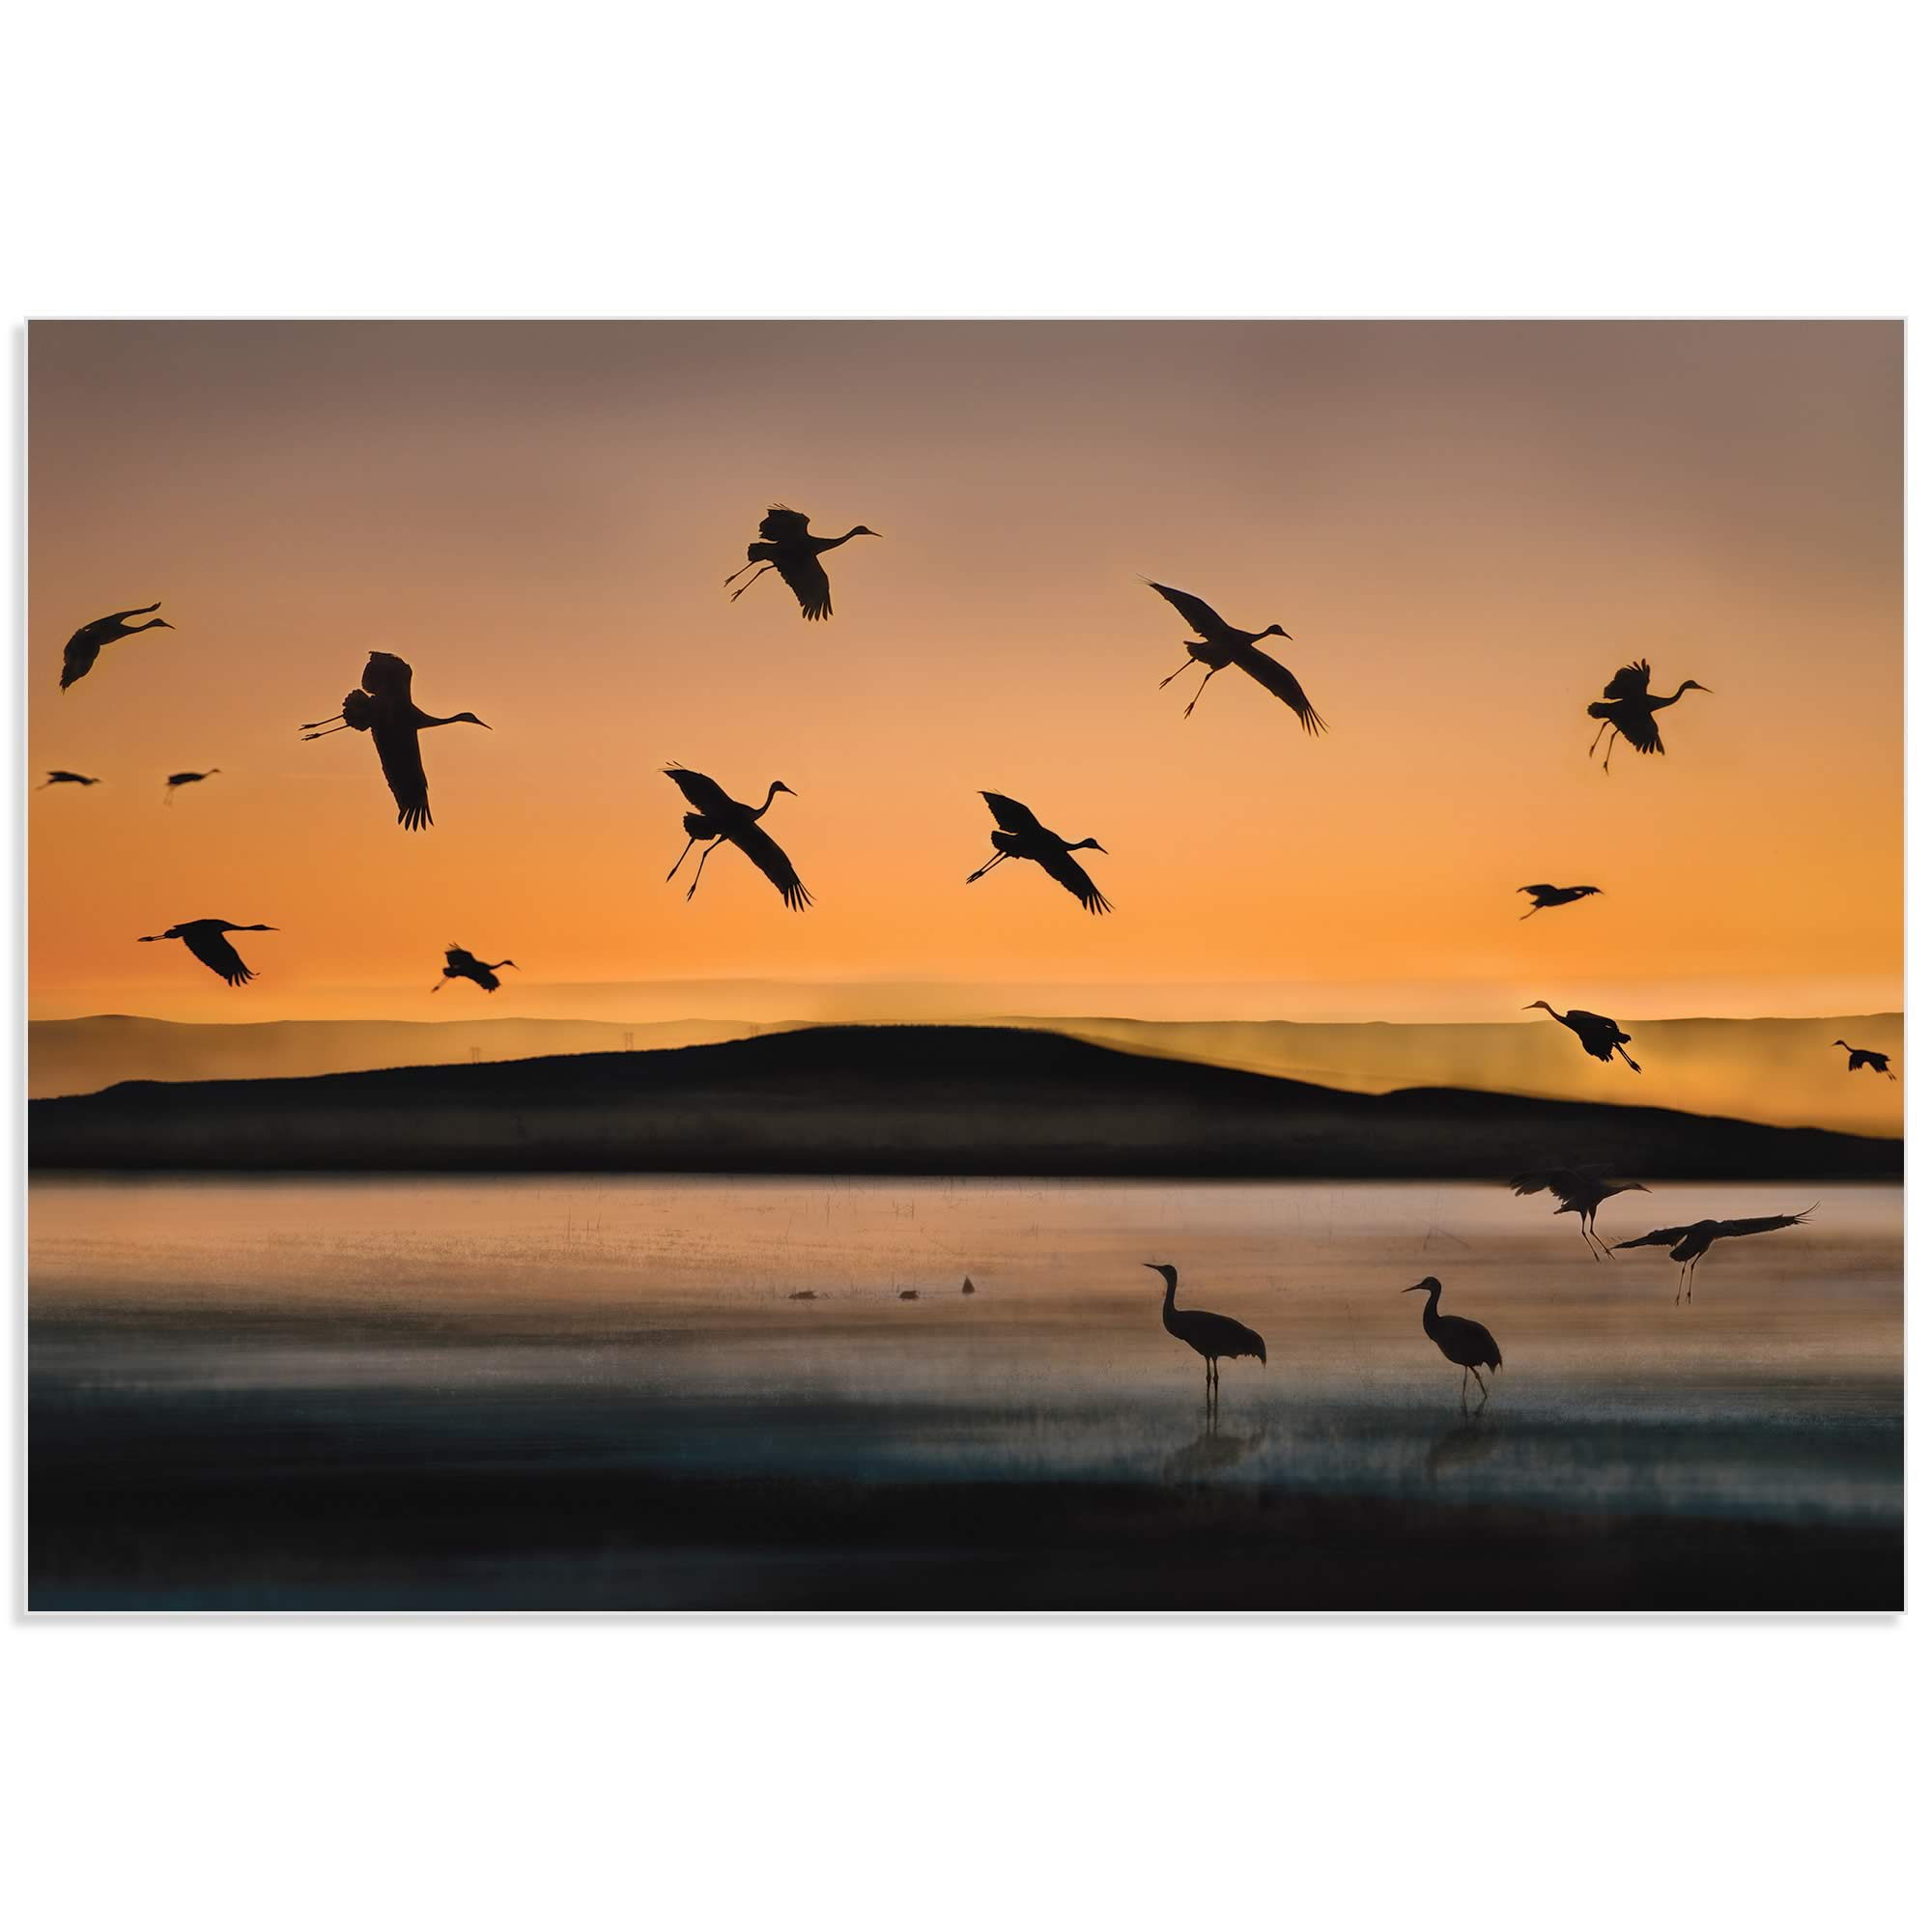 Cranes at Sunset by Shenshen Dou - Bird Silhouette Art on Metal or Acrylic - Alternate View 2